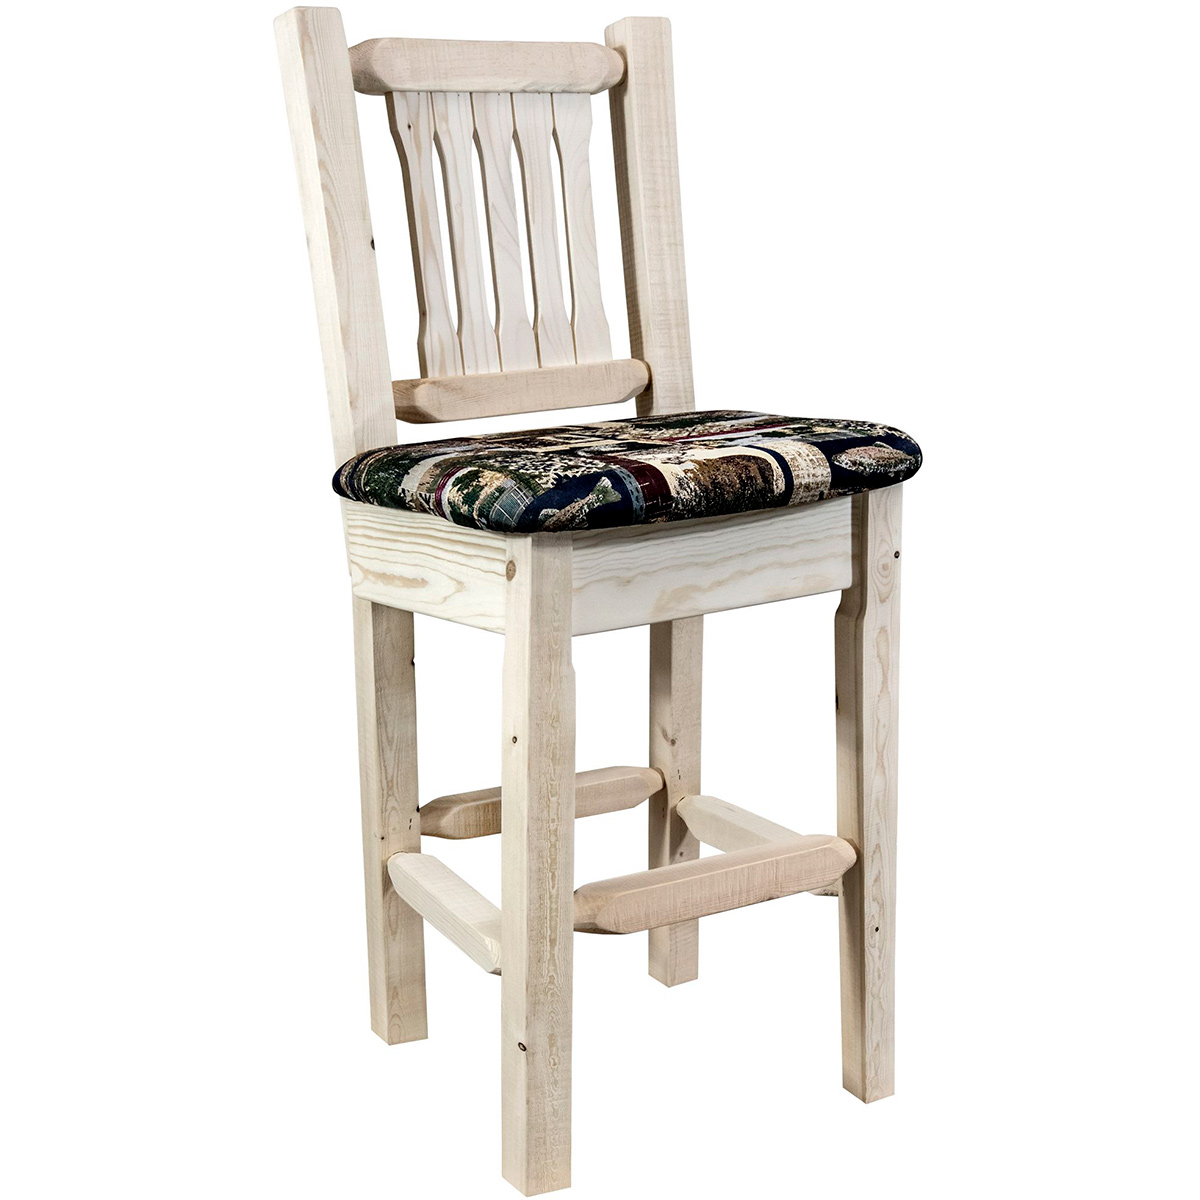 Ranchman's Counter Stool with Woodland Upholstery & Clear Lacquer Finish